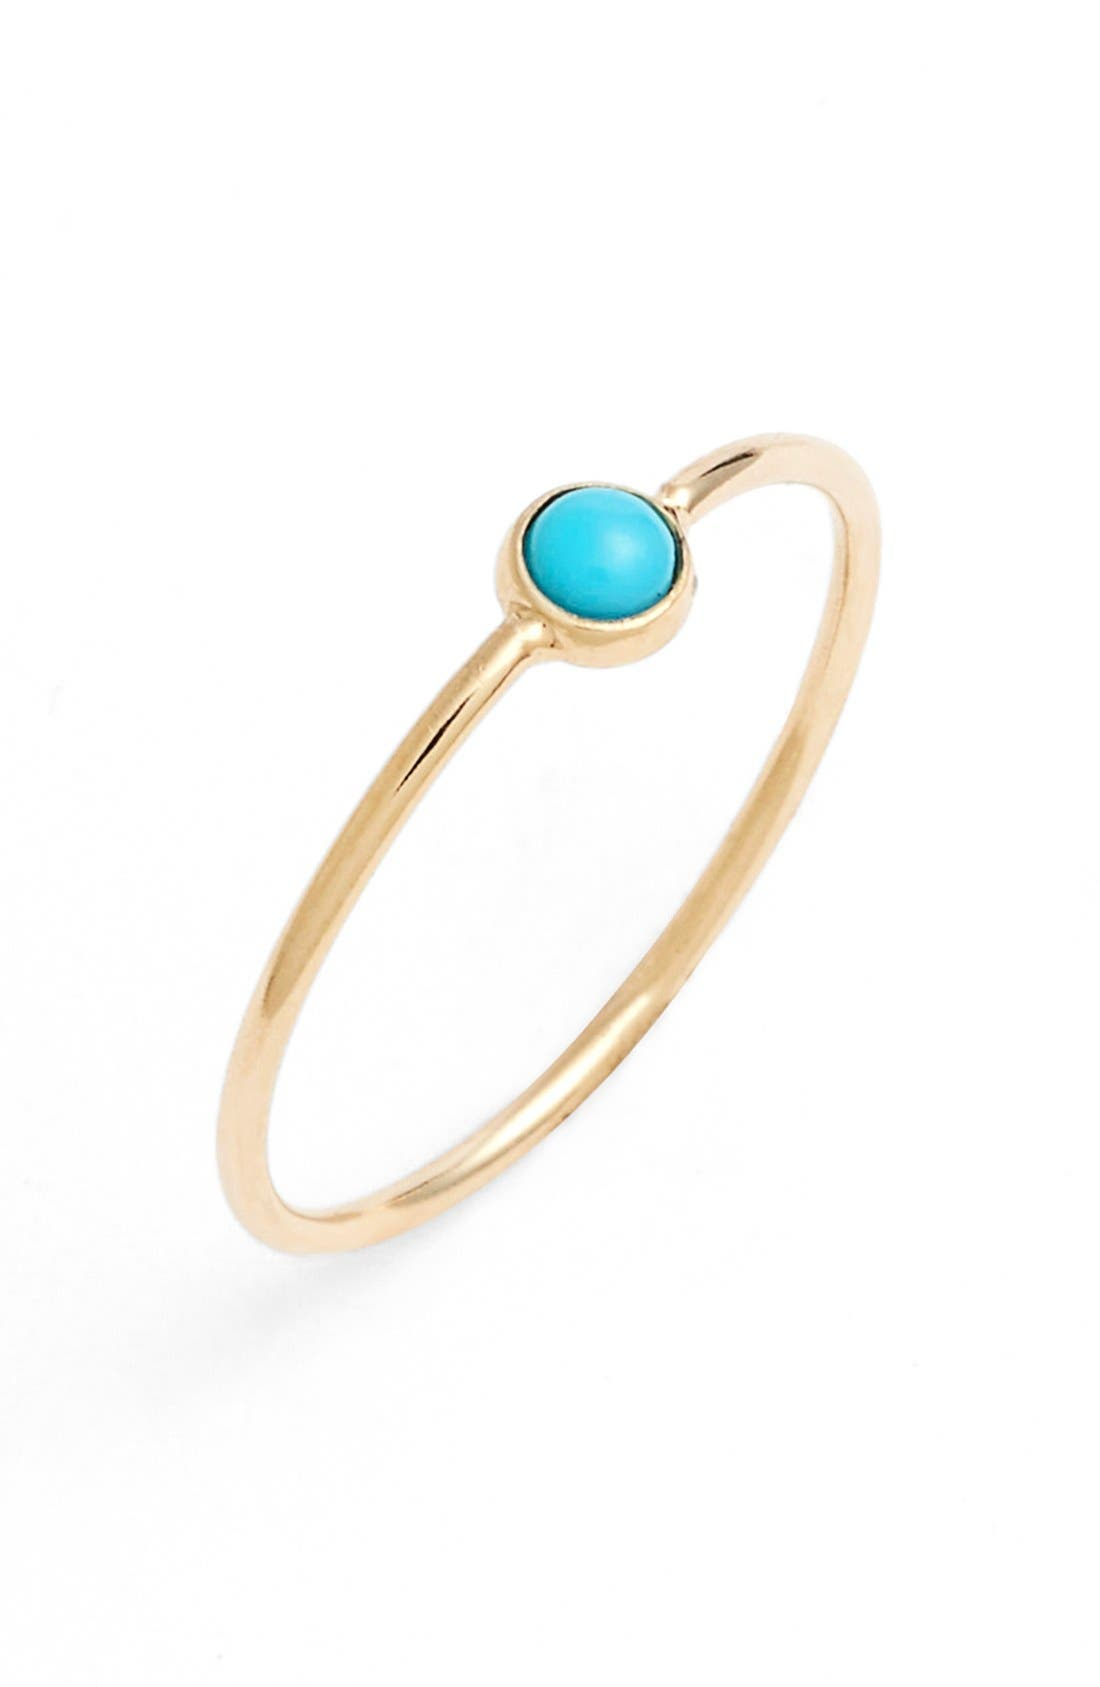 ZOË CHICCO Turquoise Stacking Ring, Main, color, TURQUOISE